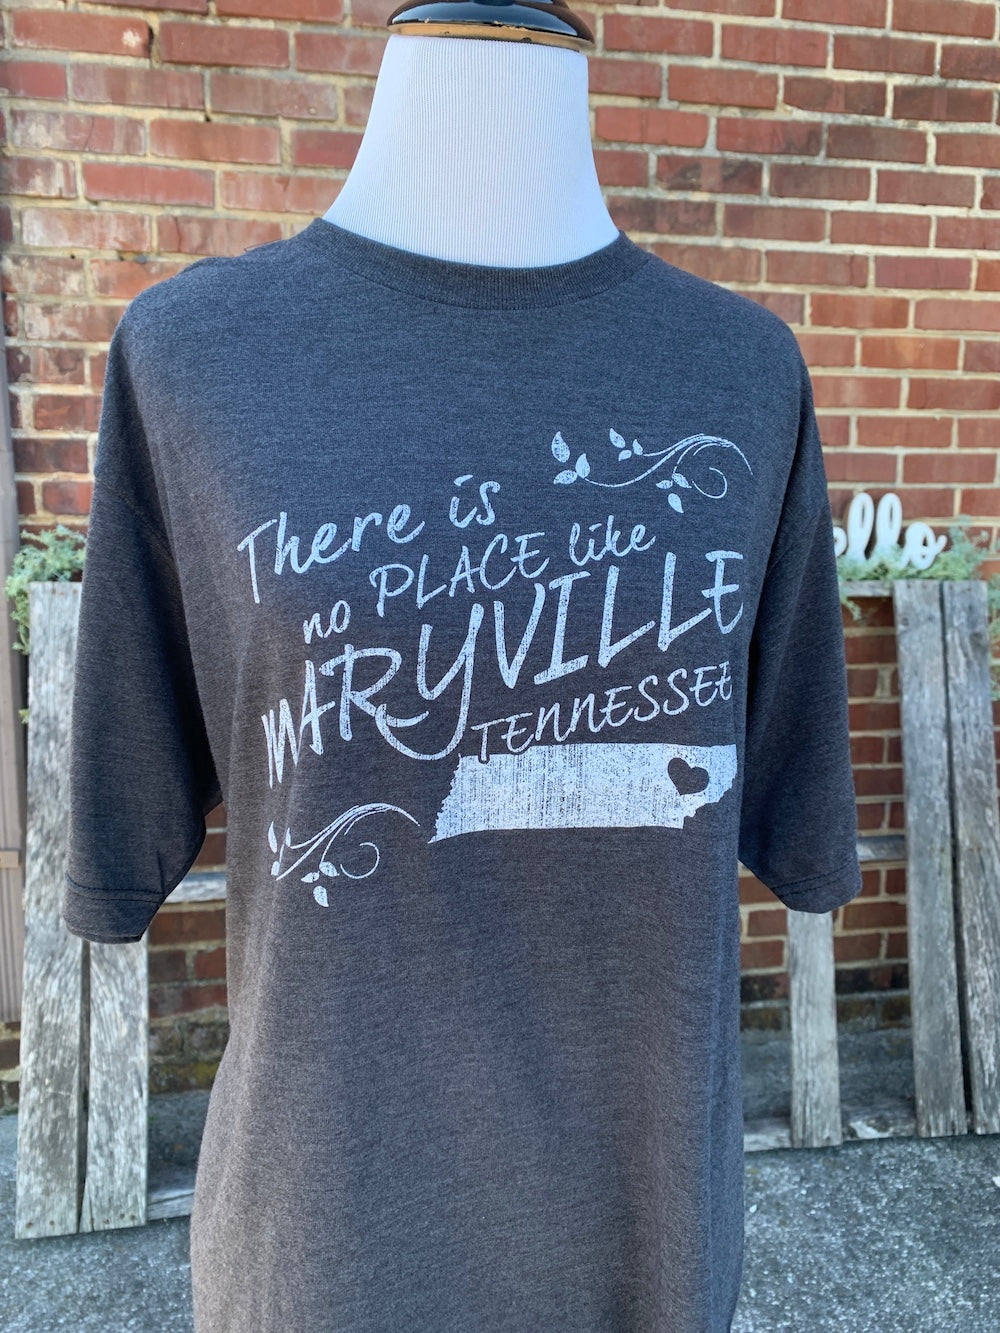 SALE-No place like Maryville, Tennessee Tee